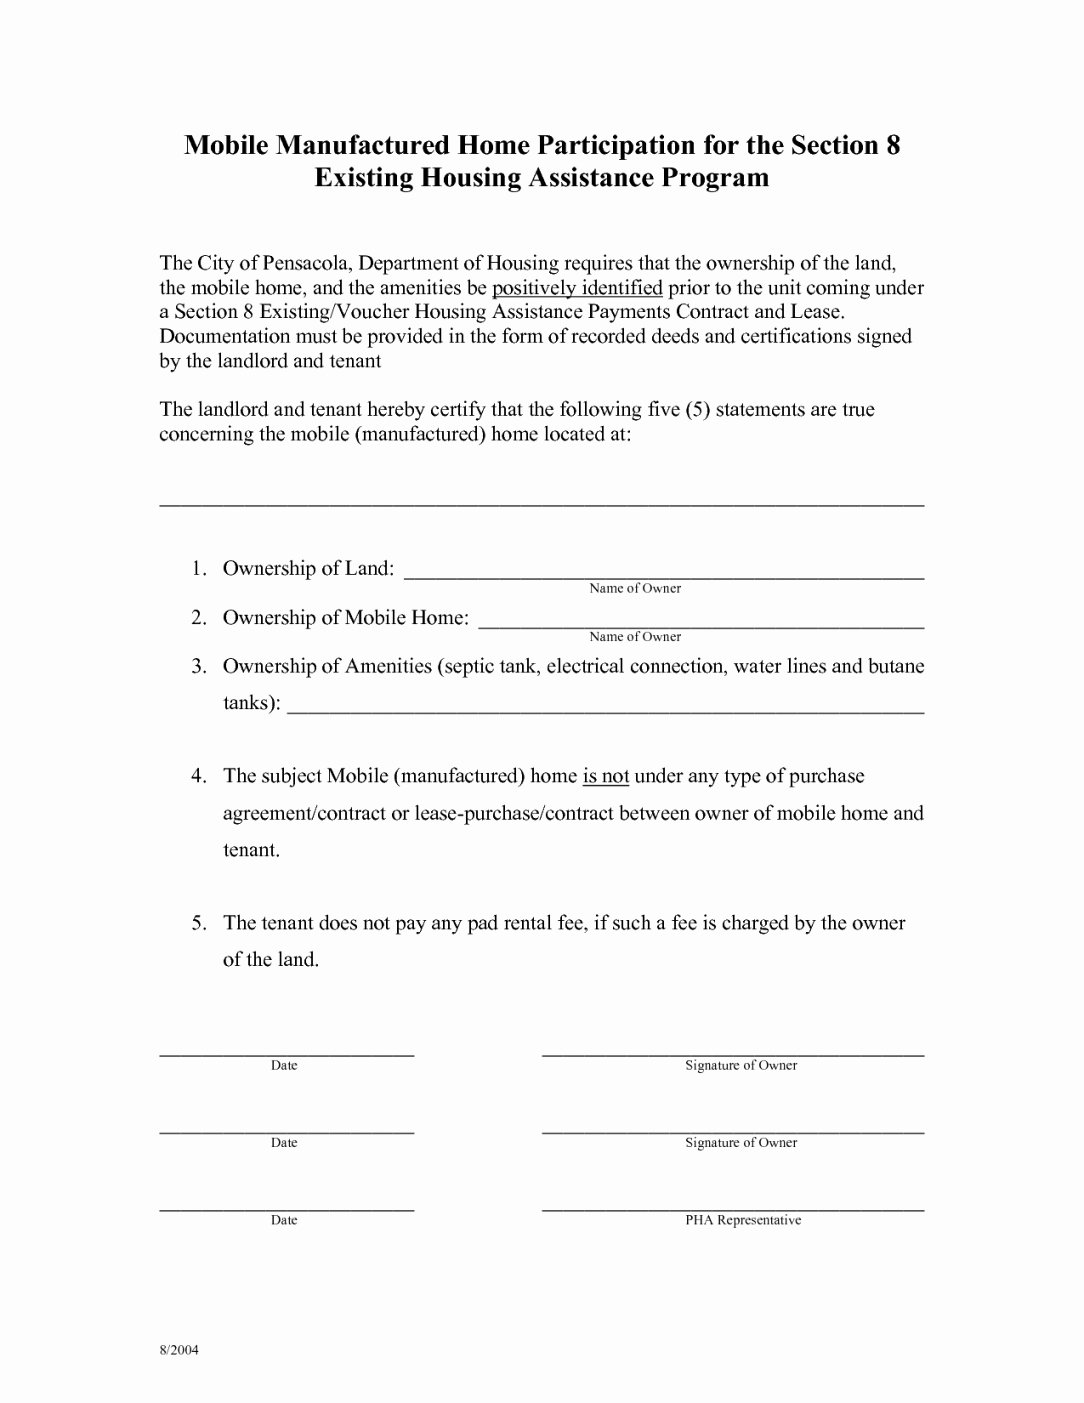 Home Purchase Agreement Template Lovely Mobile Home Purchase Agreement